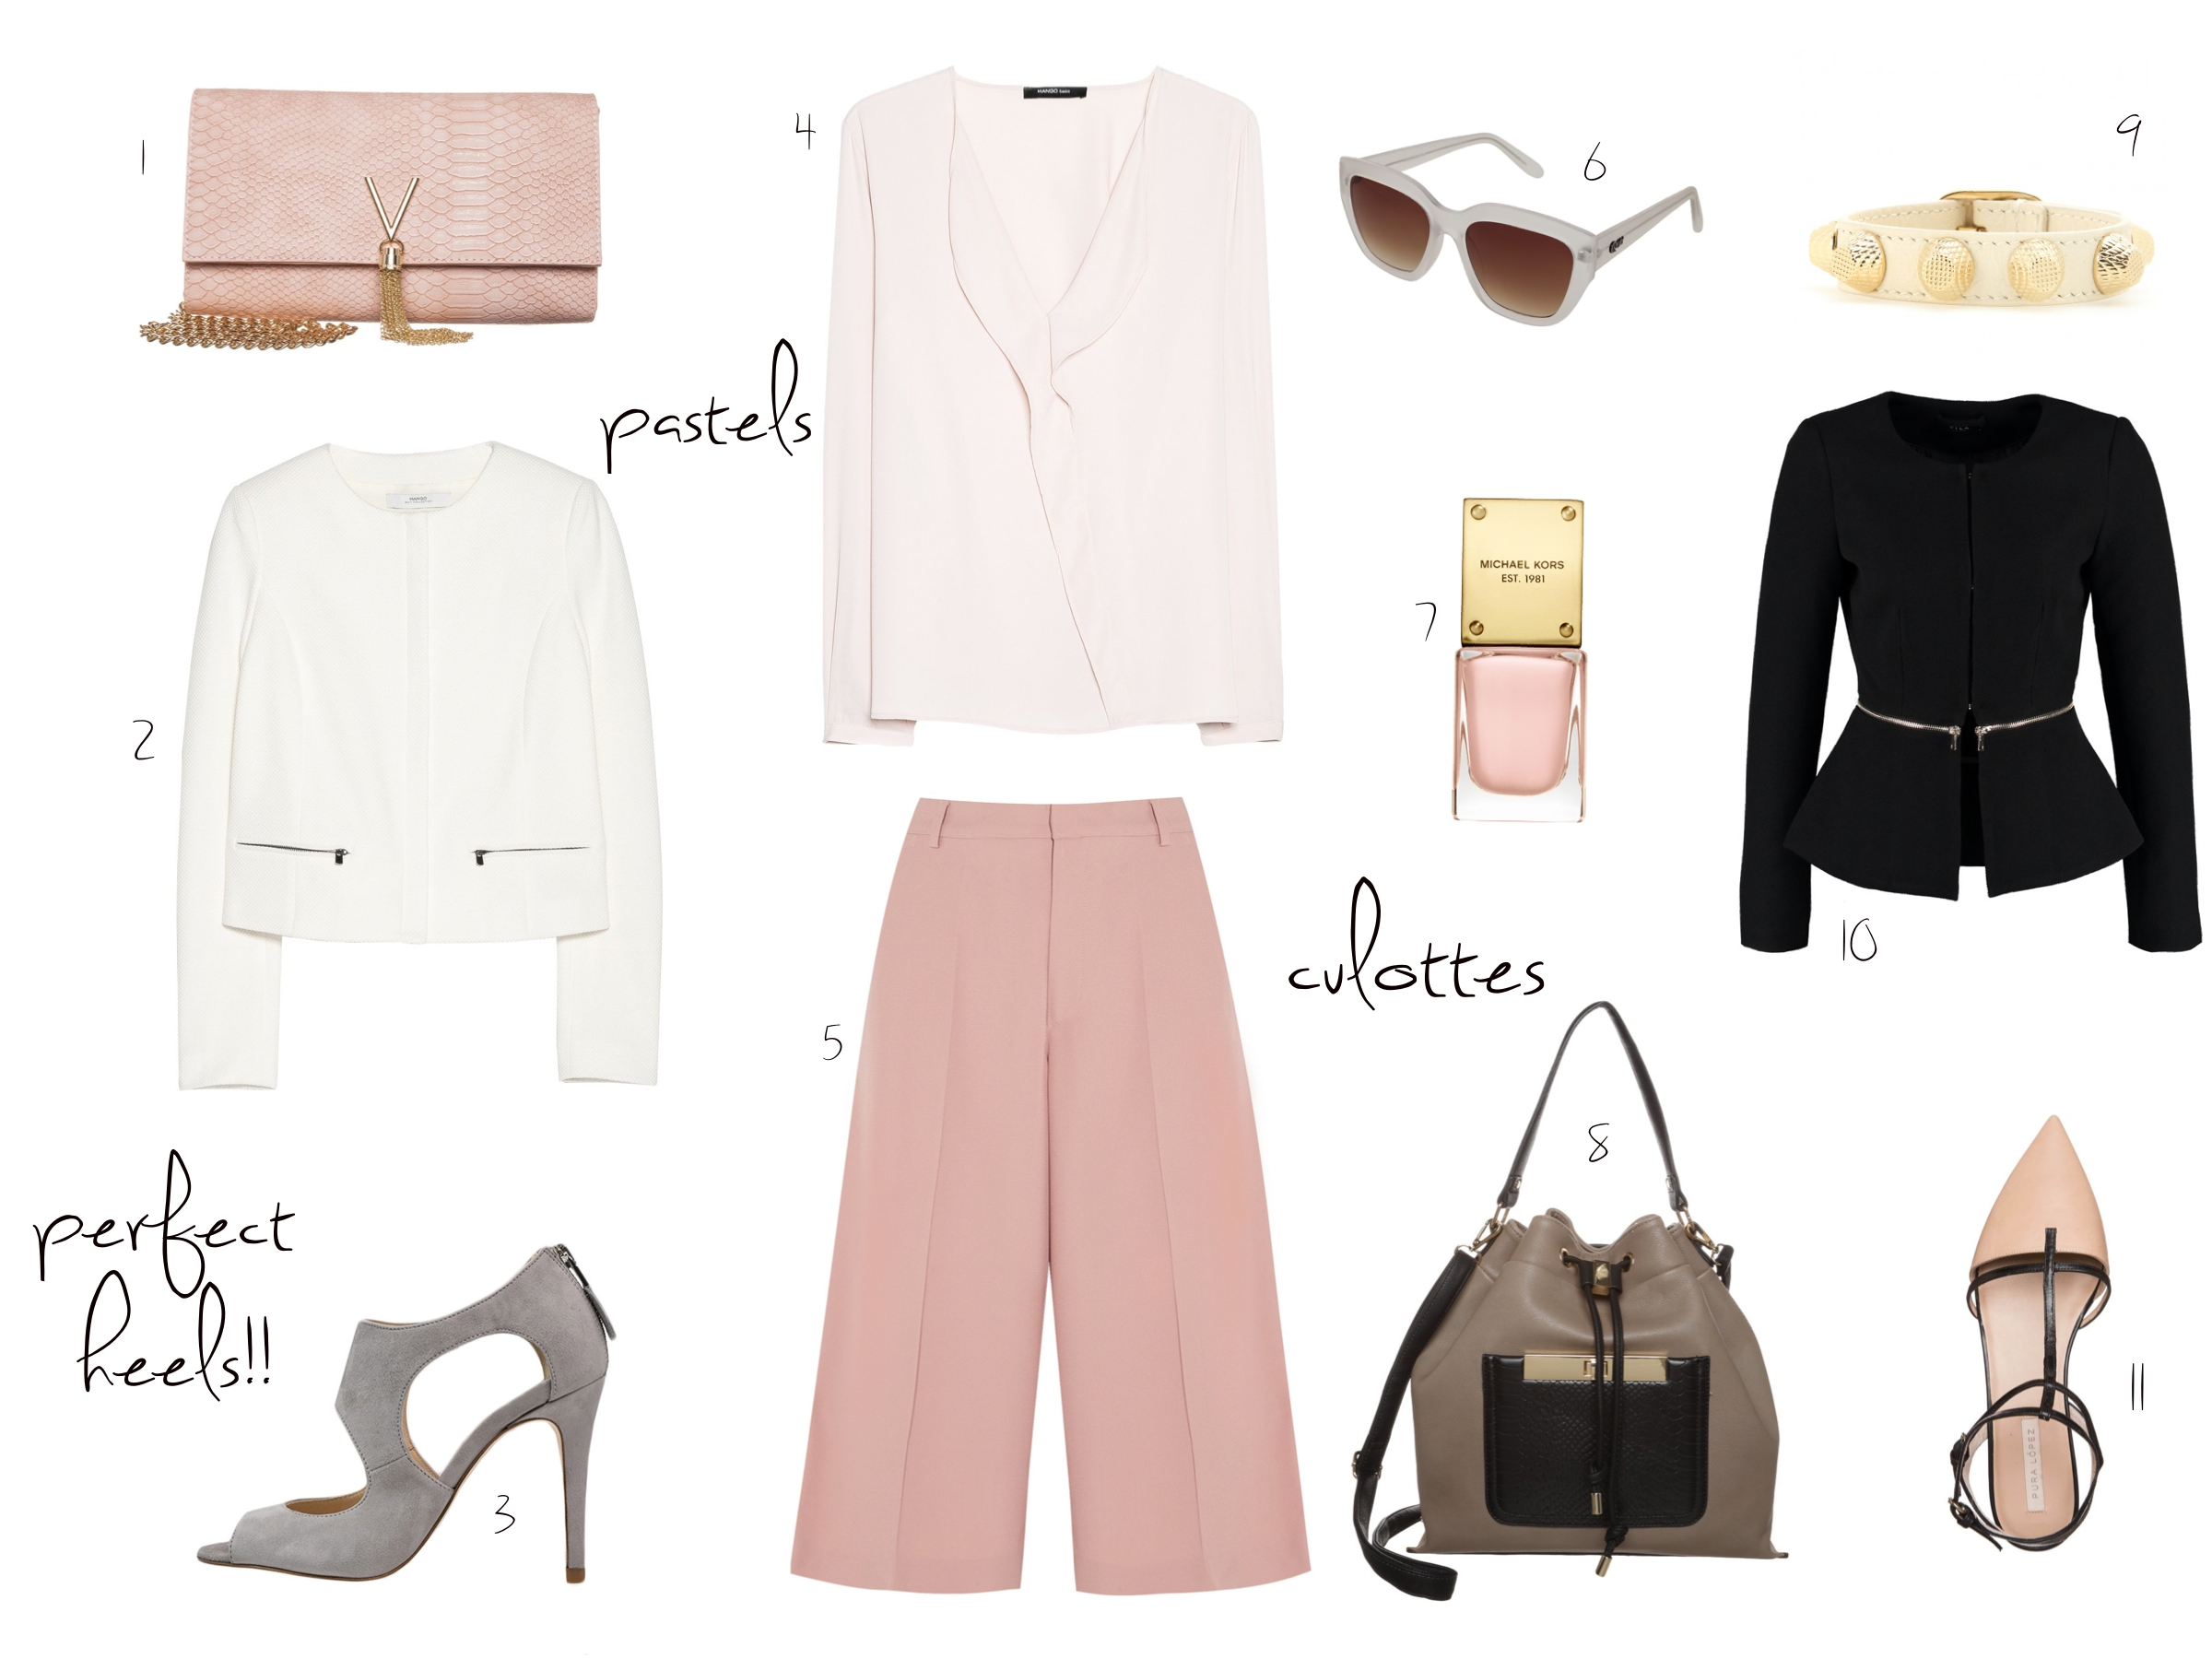 spring-outfit-inspiration-pastels-culottes-easter